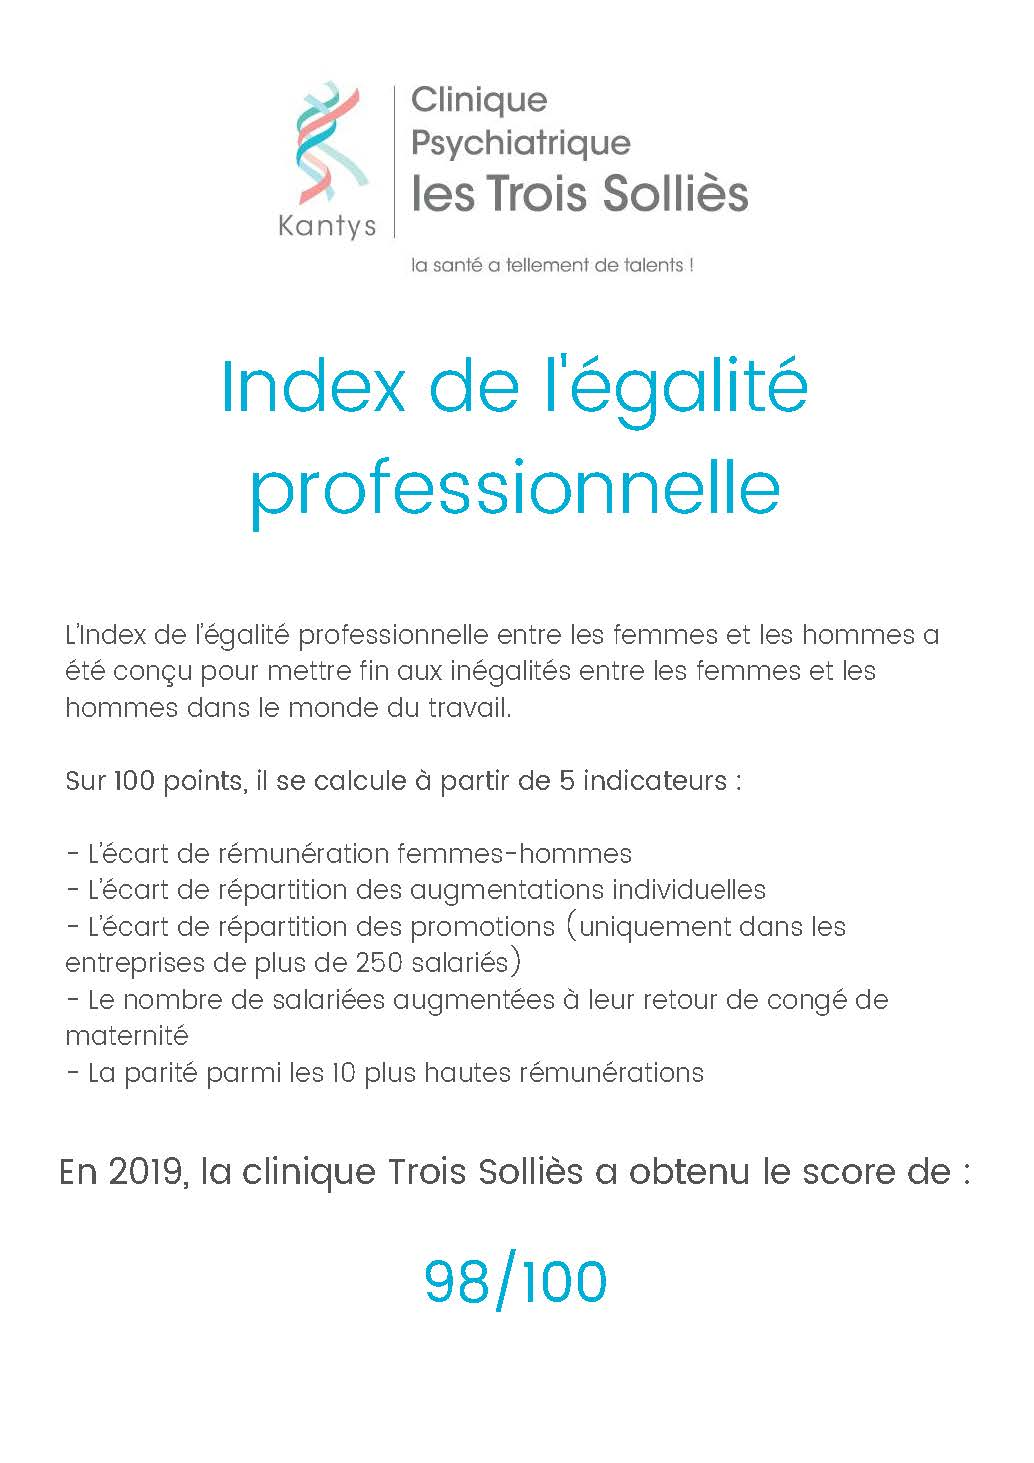 index-egalite-pro-hf-trois-sollies-2019